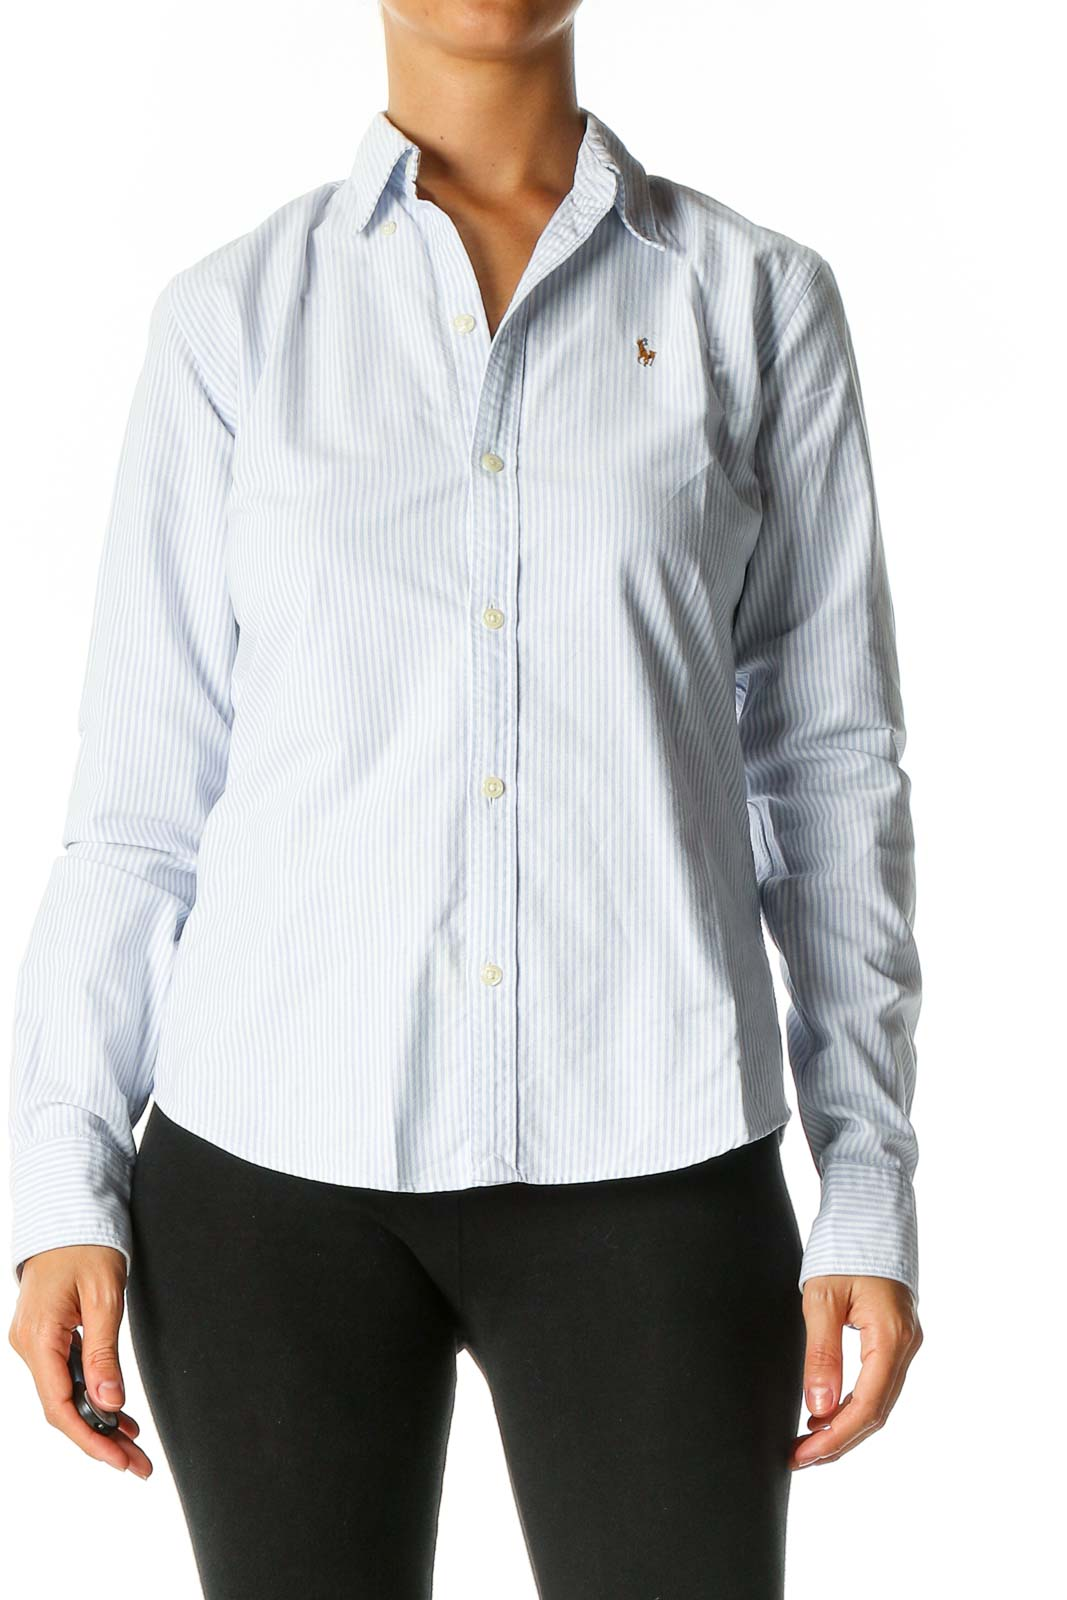 White Striped Formal Shirt Front